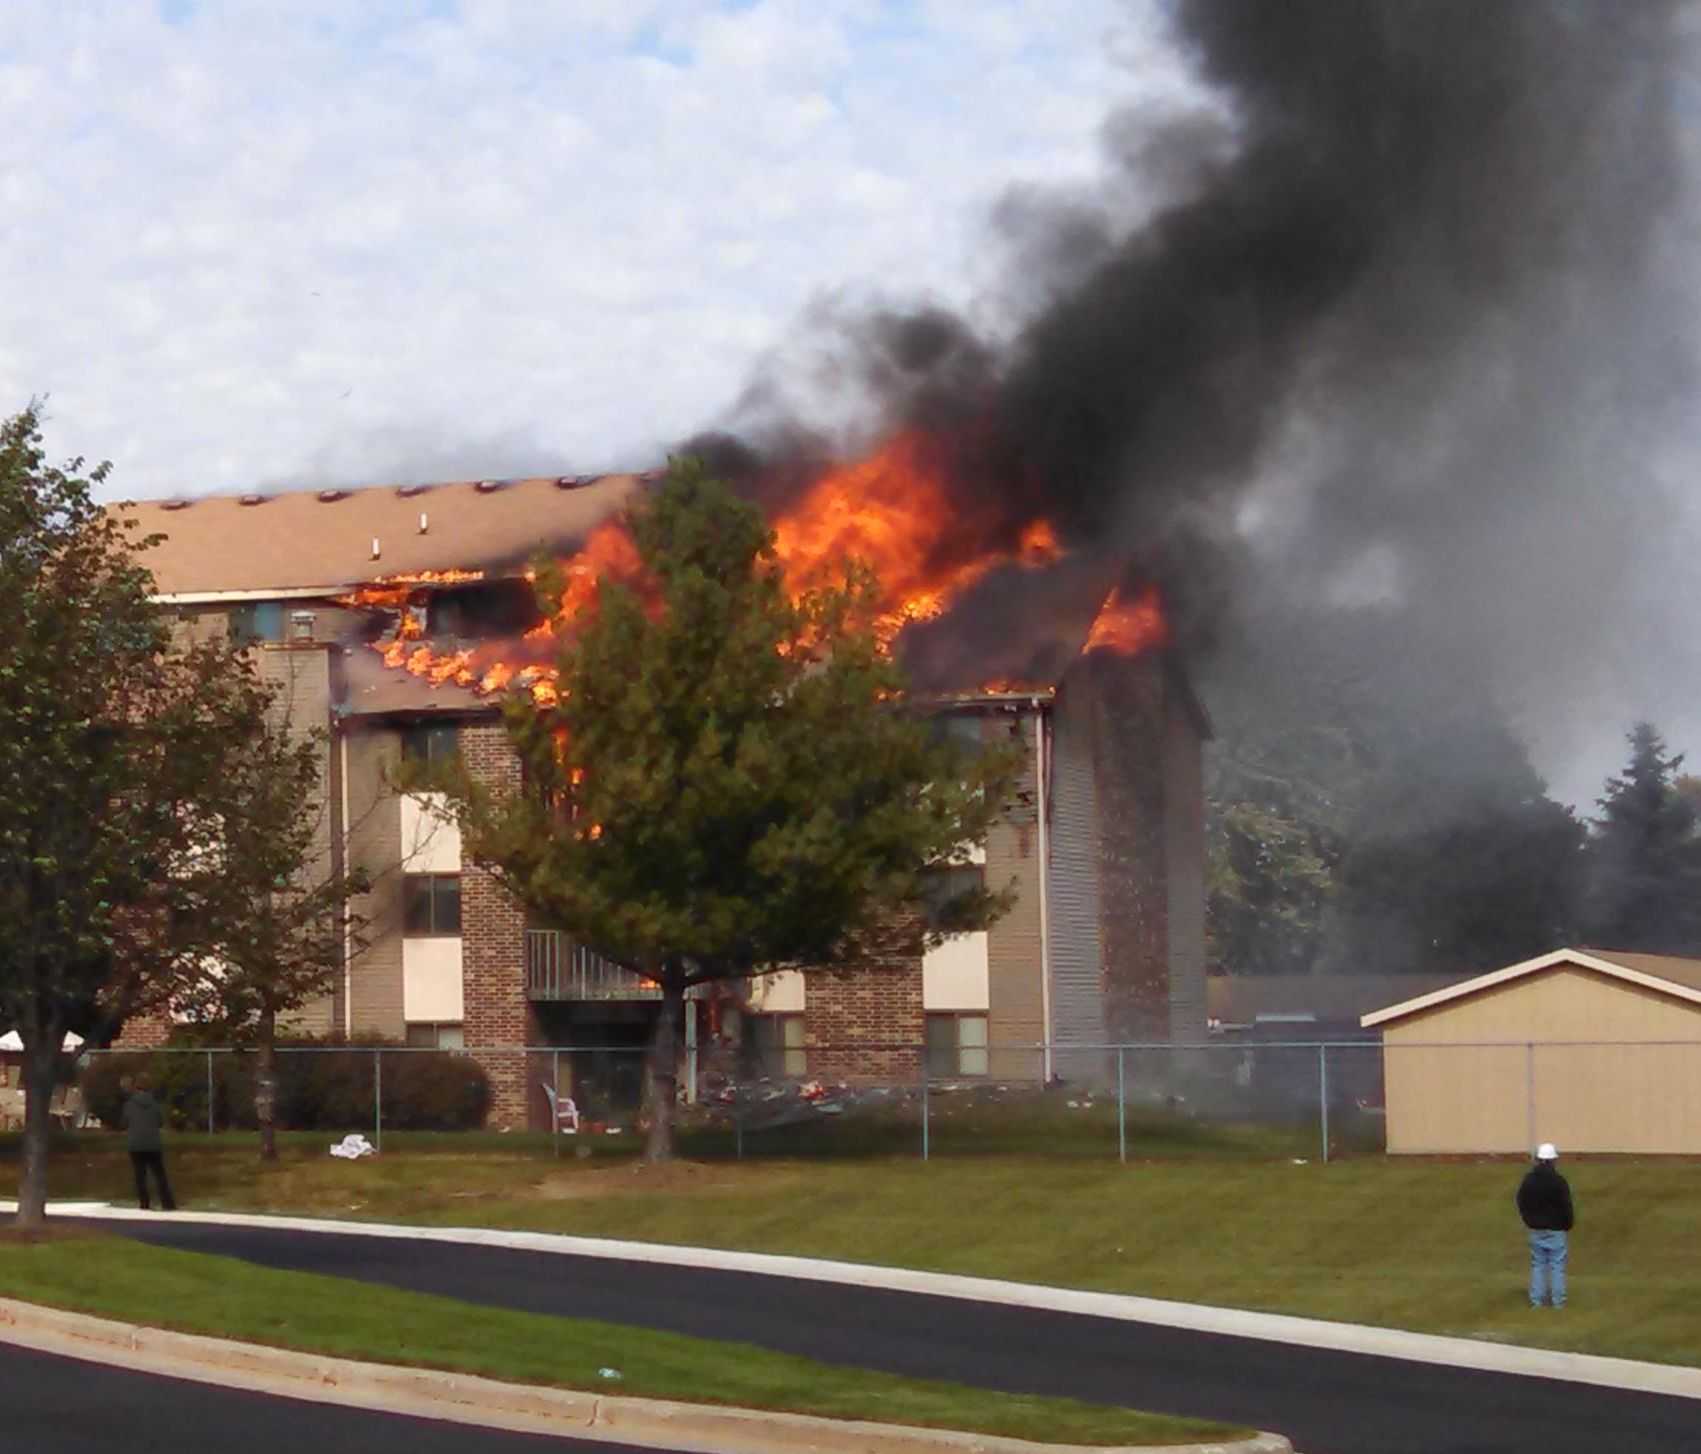 No Injuries In Grandville Apartment Fire